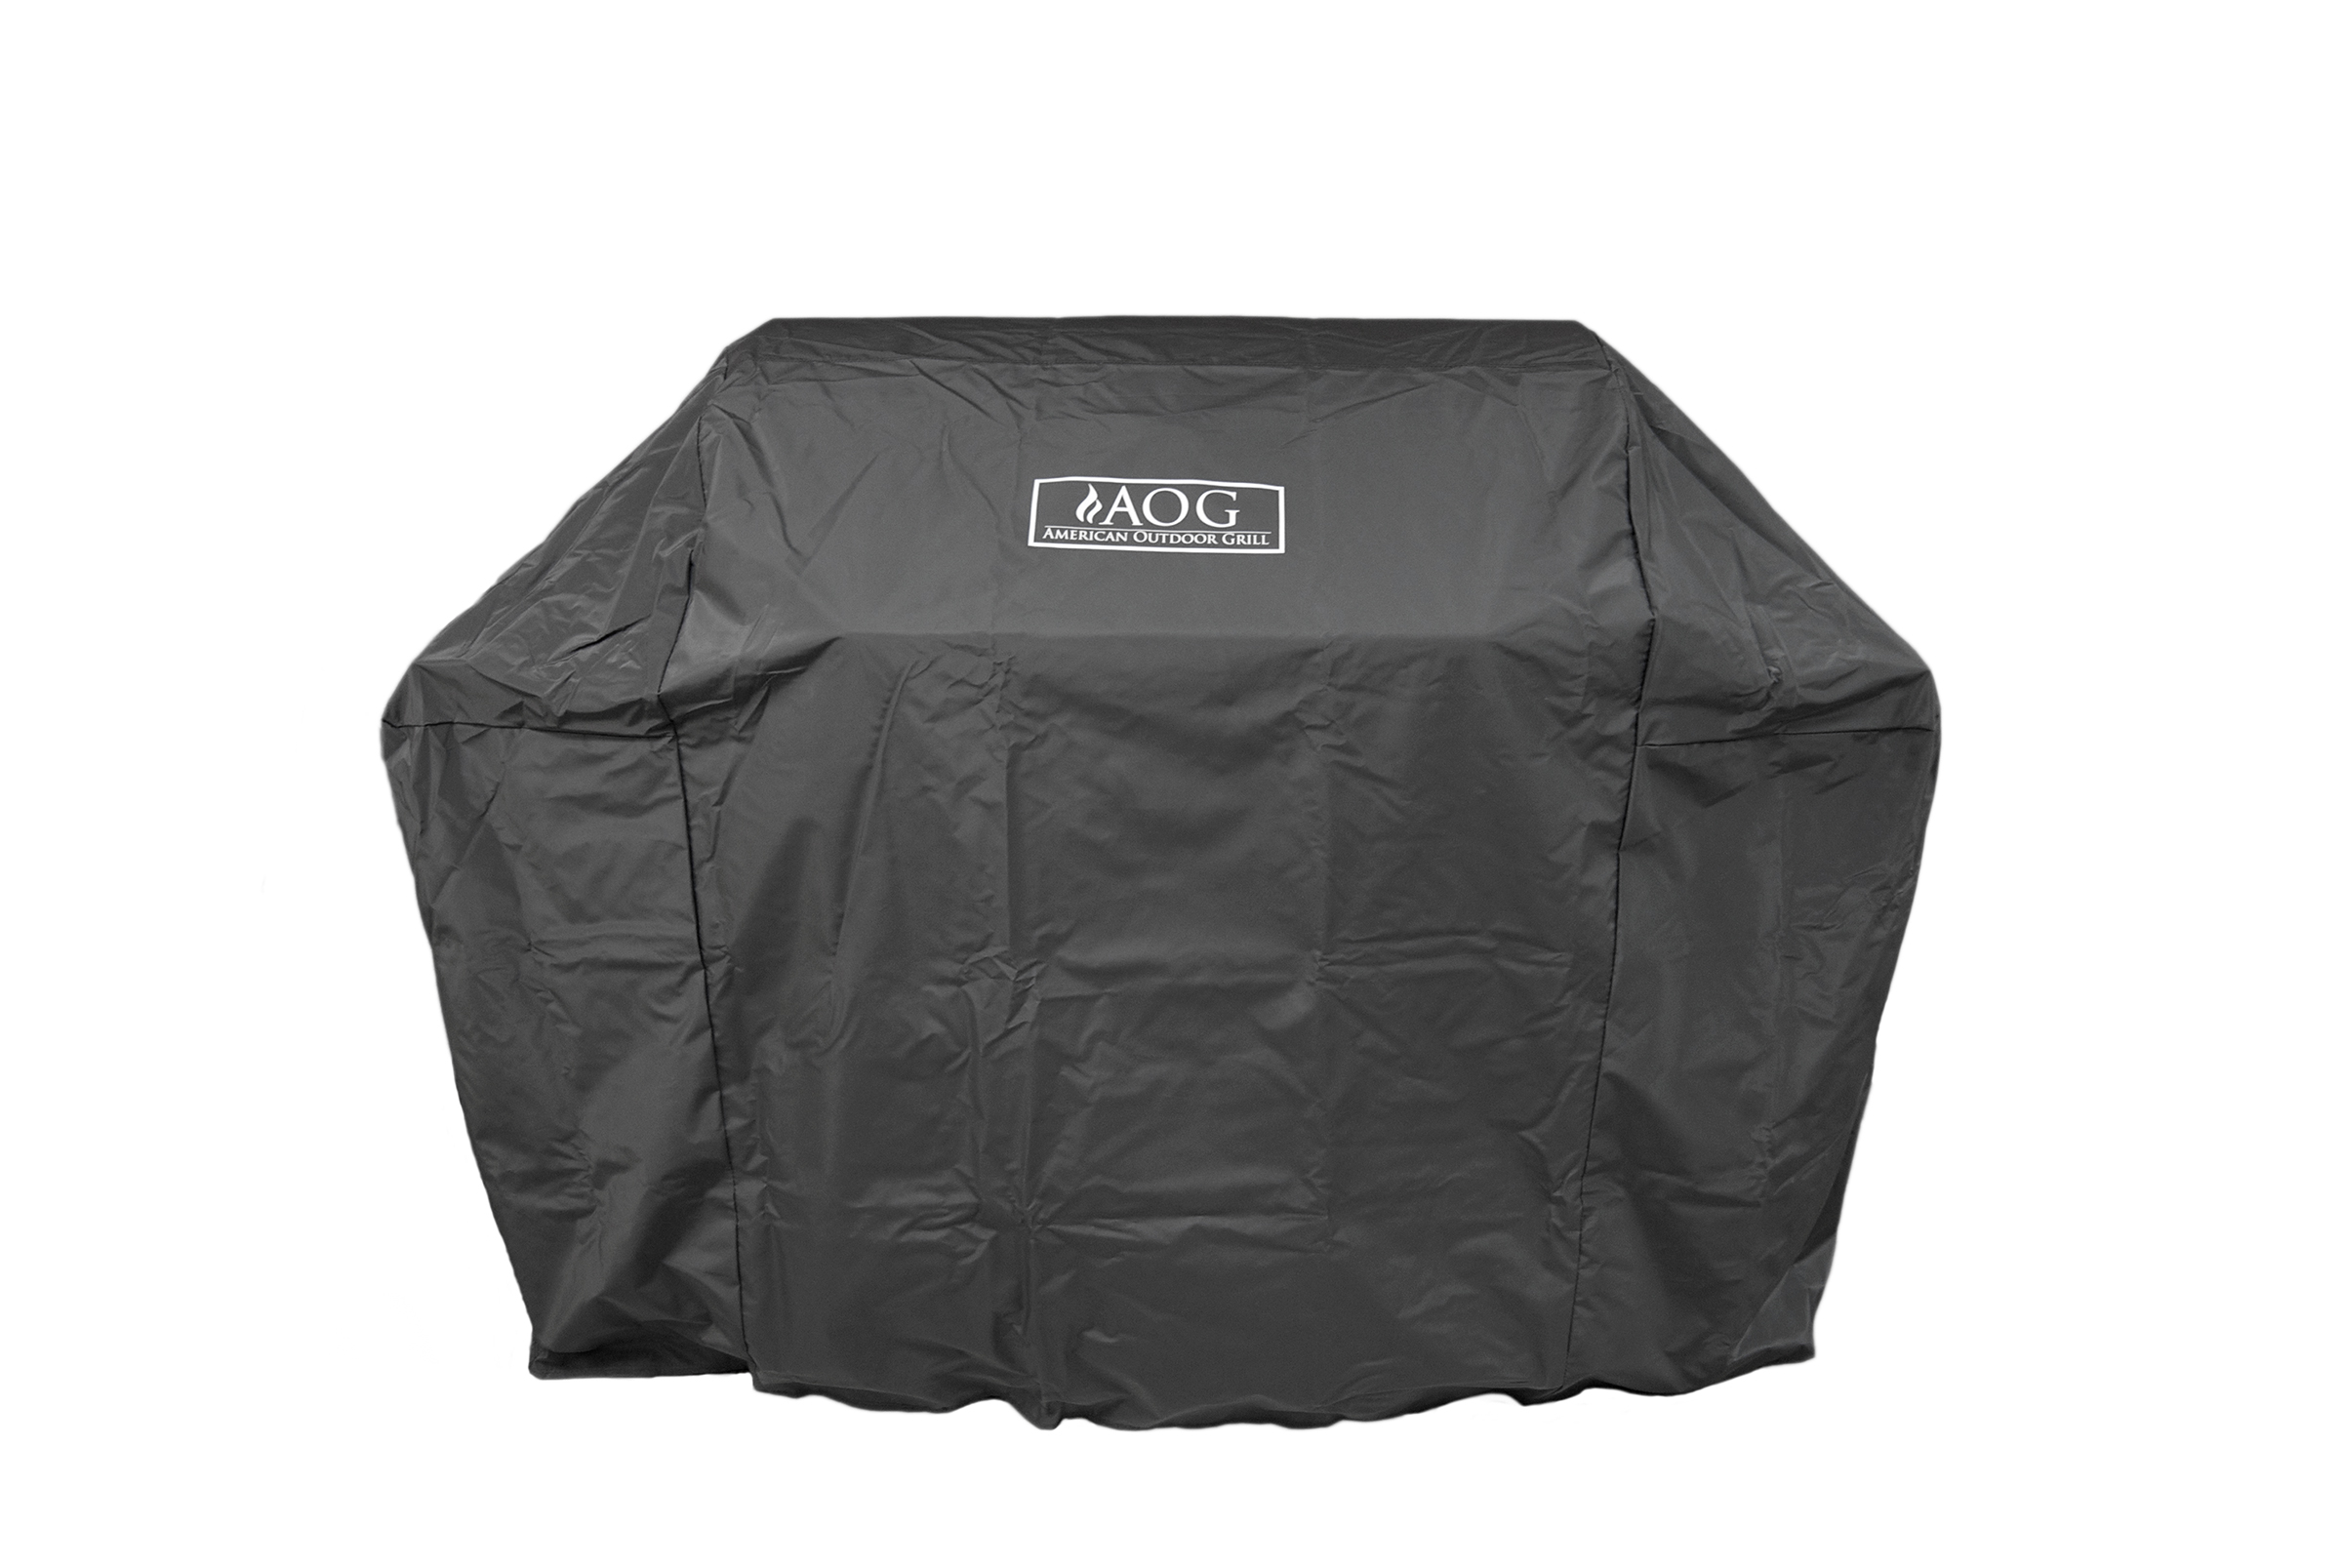 aog-cc36-c-36-portable-cover.jpg